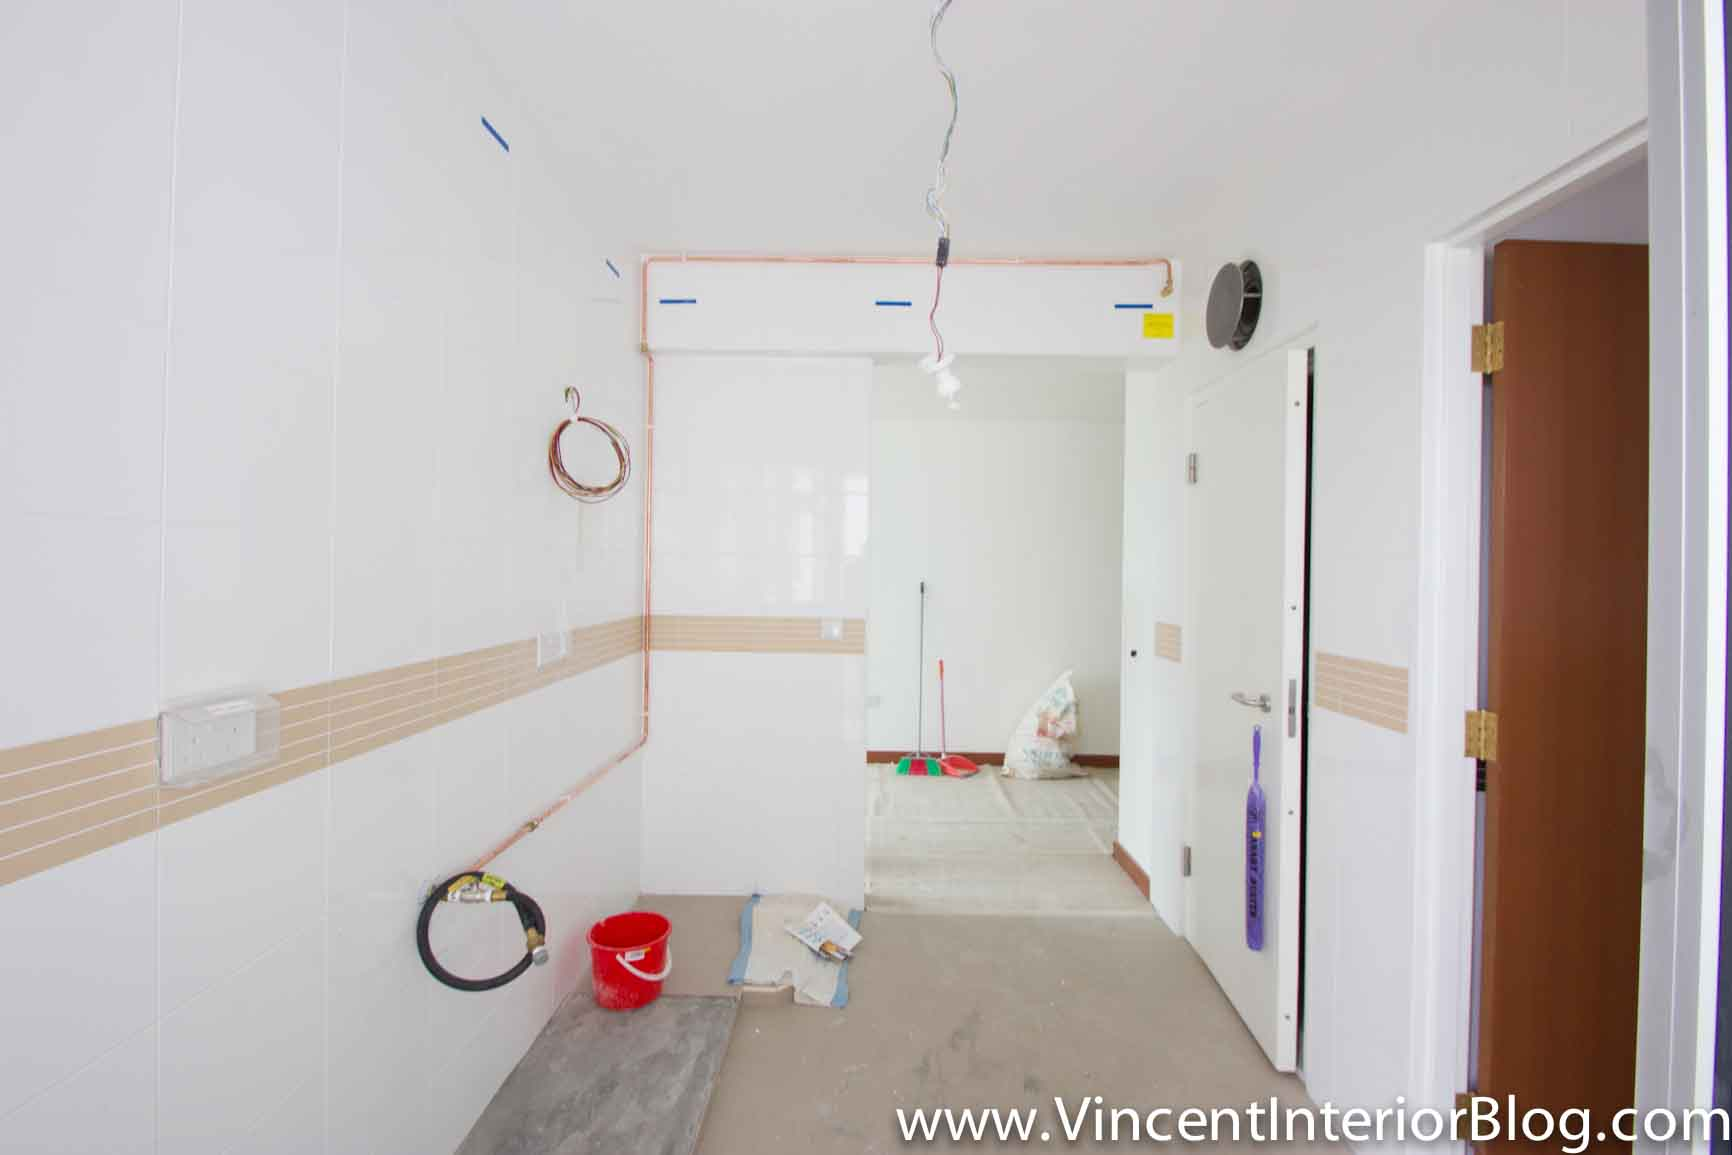 Bto 3 room hdb renovation by interior designer ben ng pre renovation